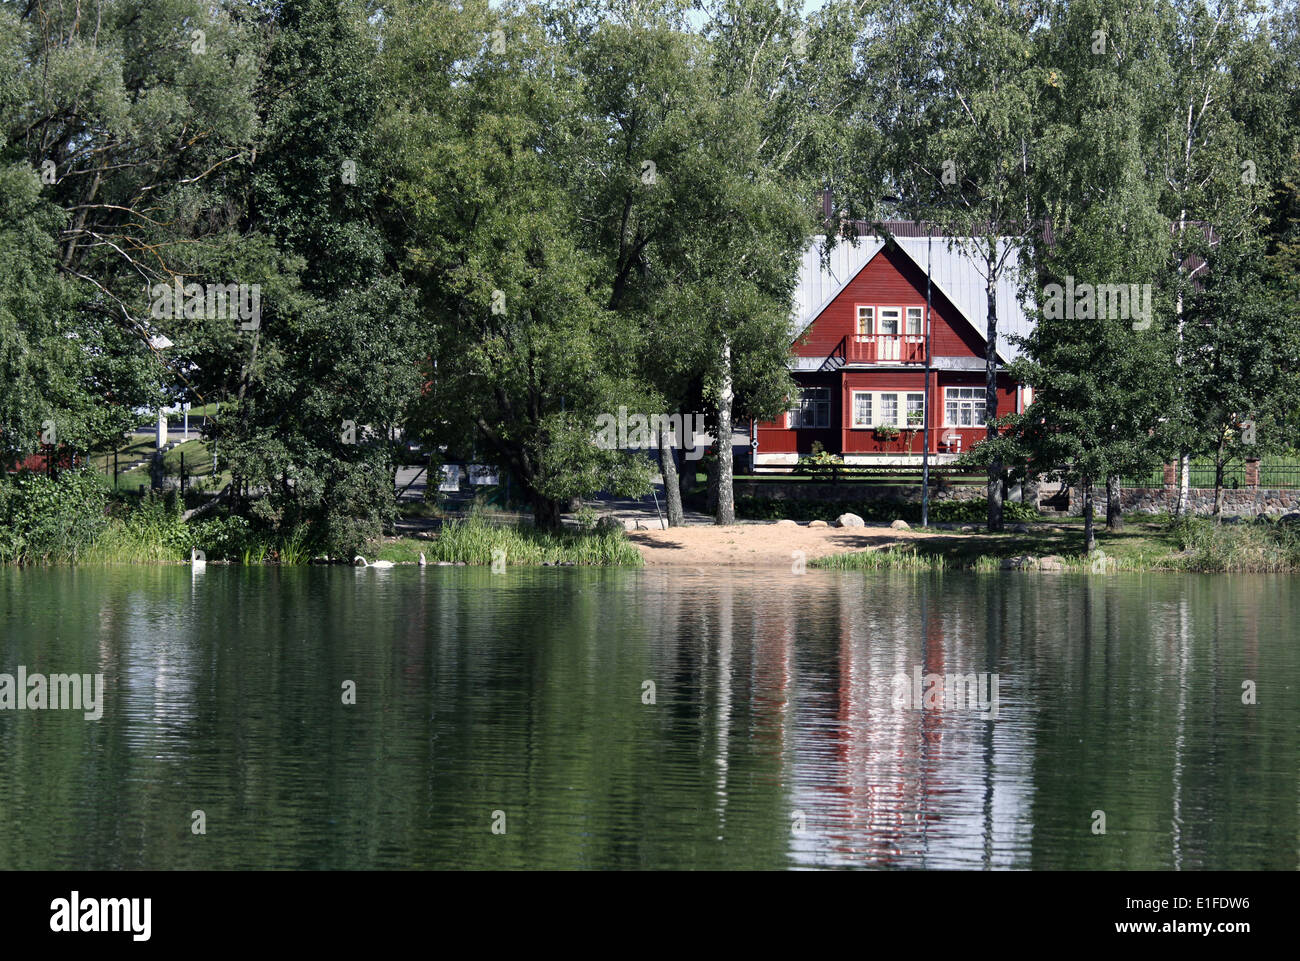 Remote summerhouse with reflection on the lake - Stock Image